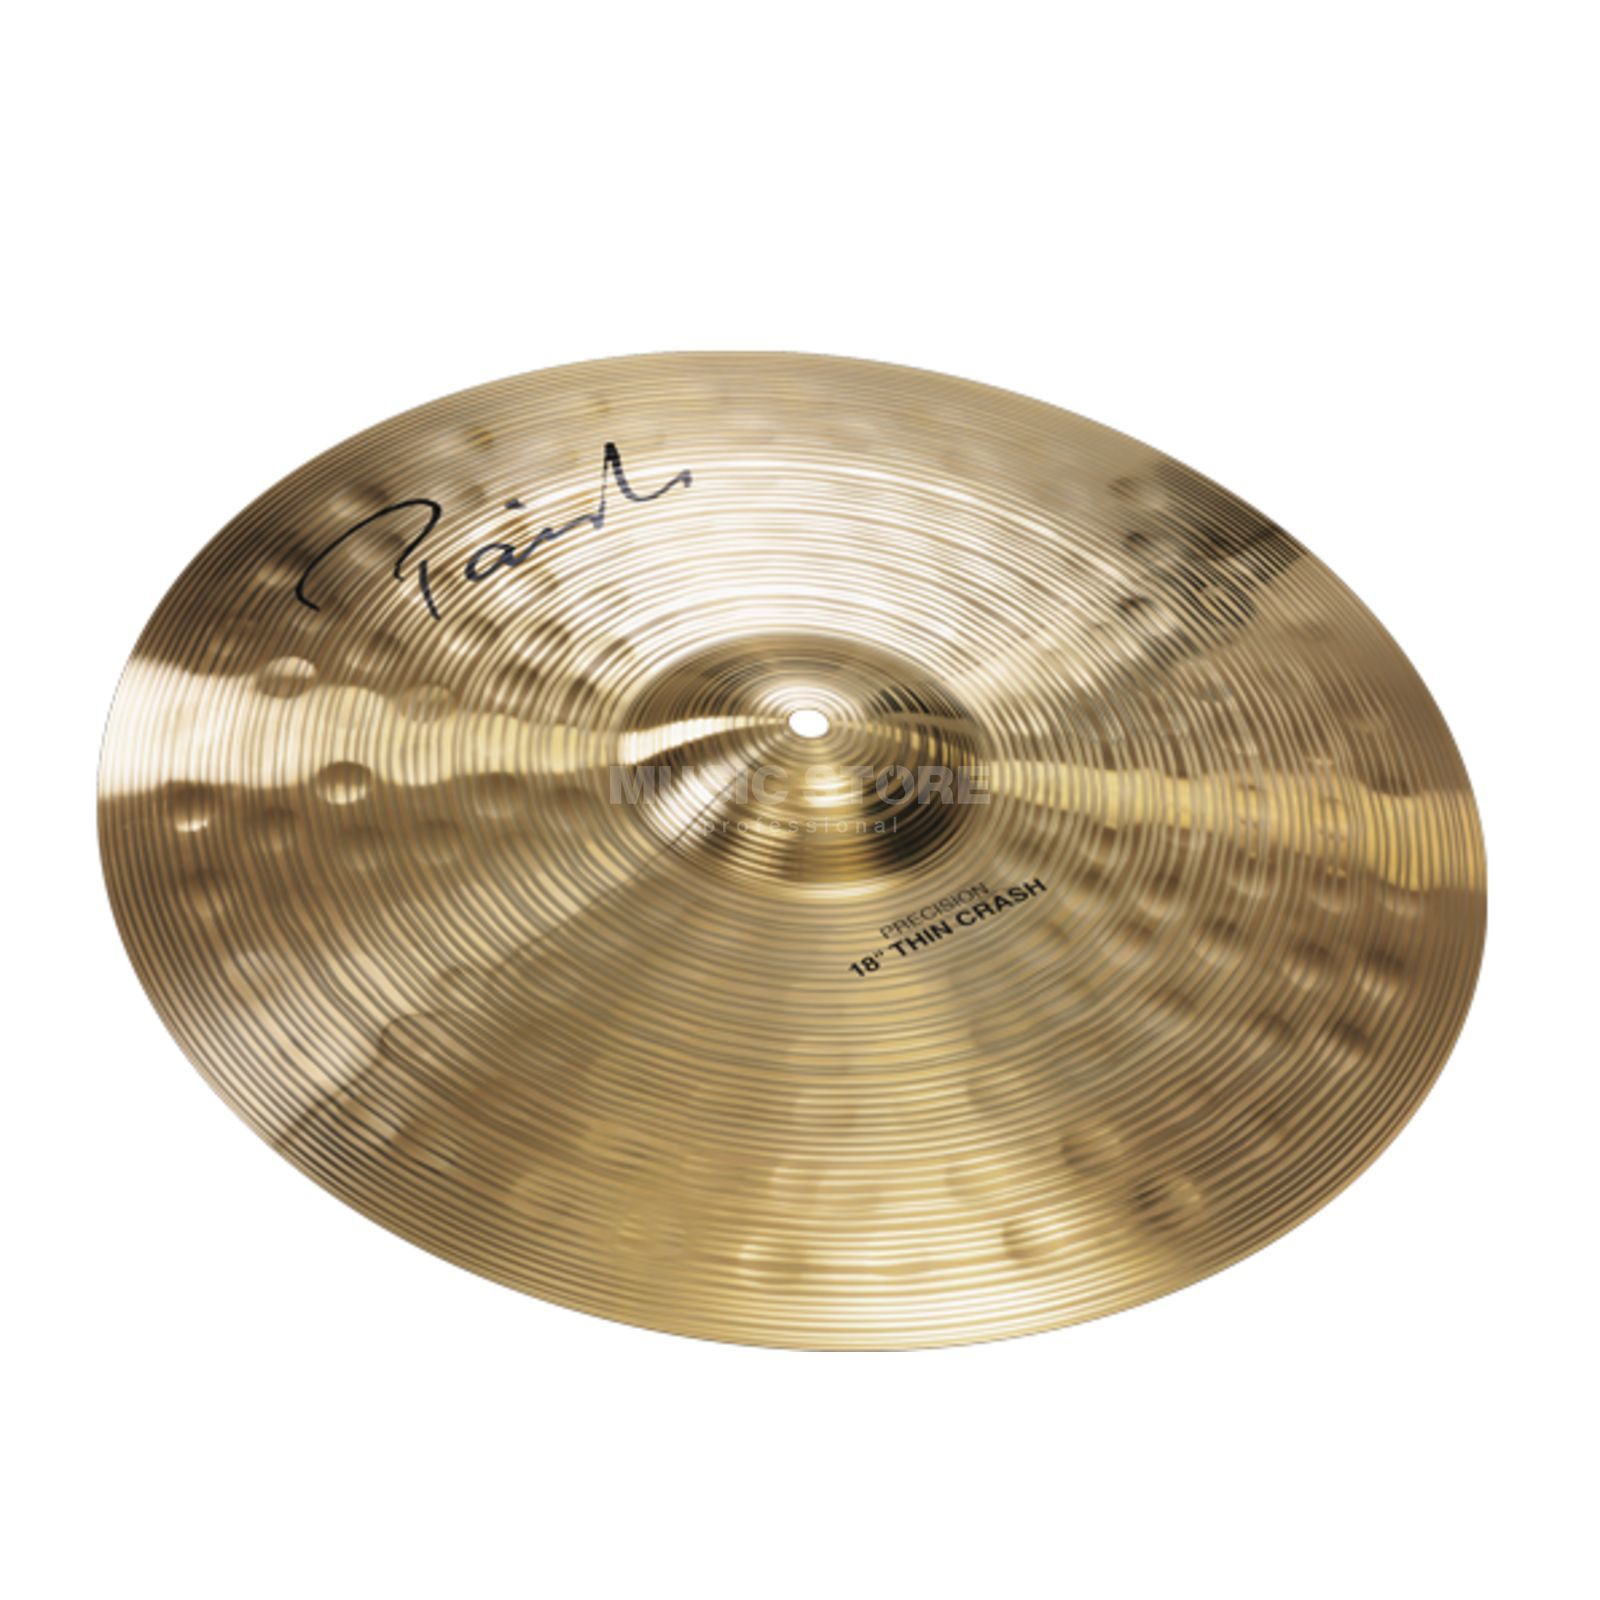 "Paiste Signature Precision Crash 18"", Thin Produktbild"